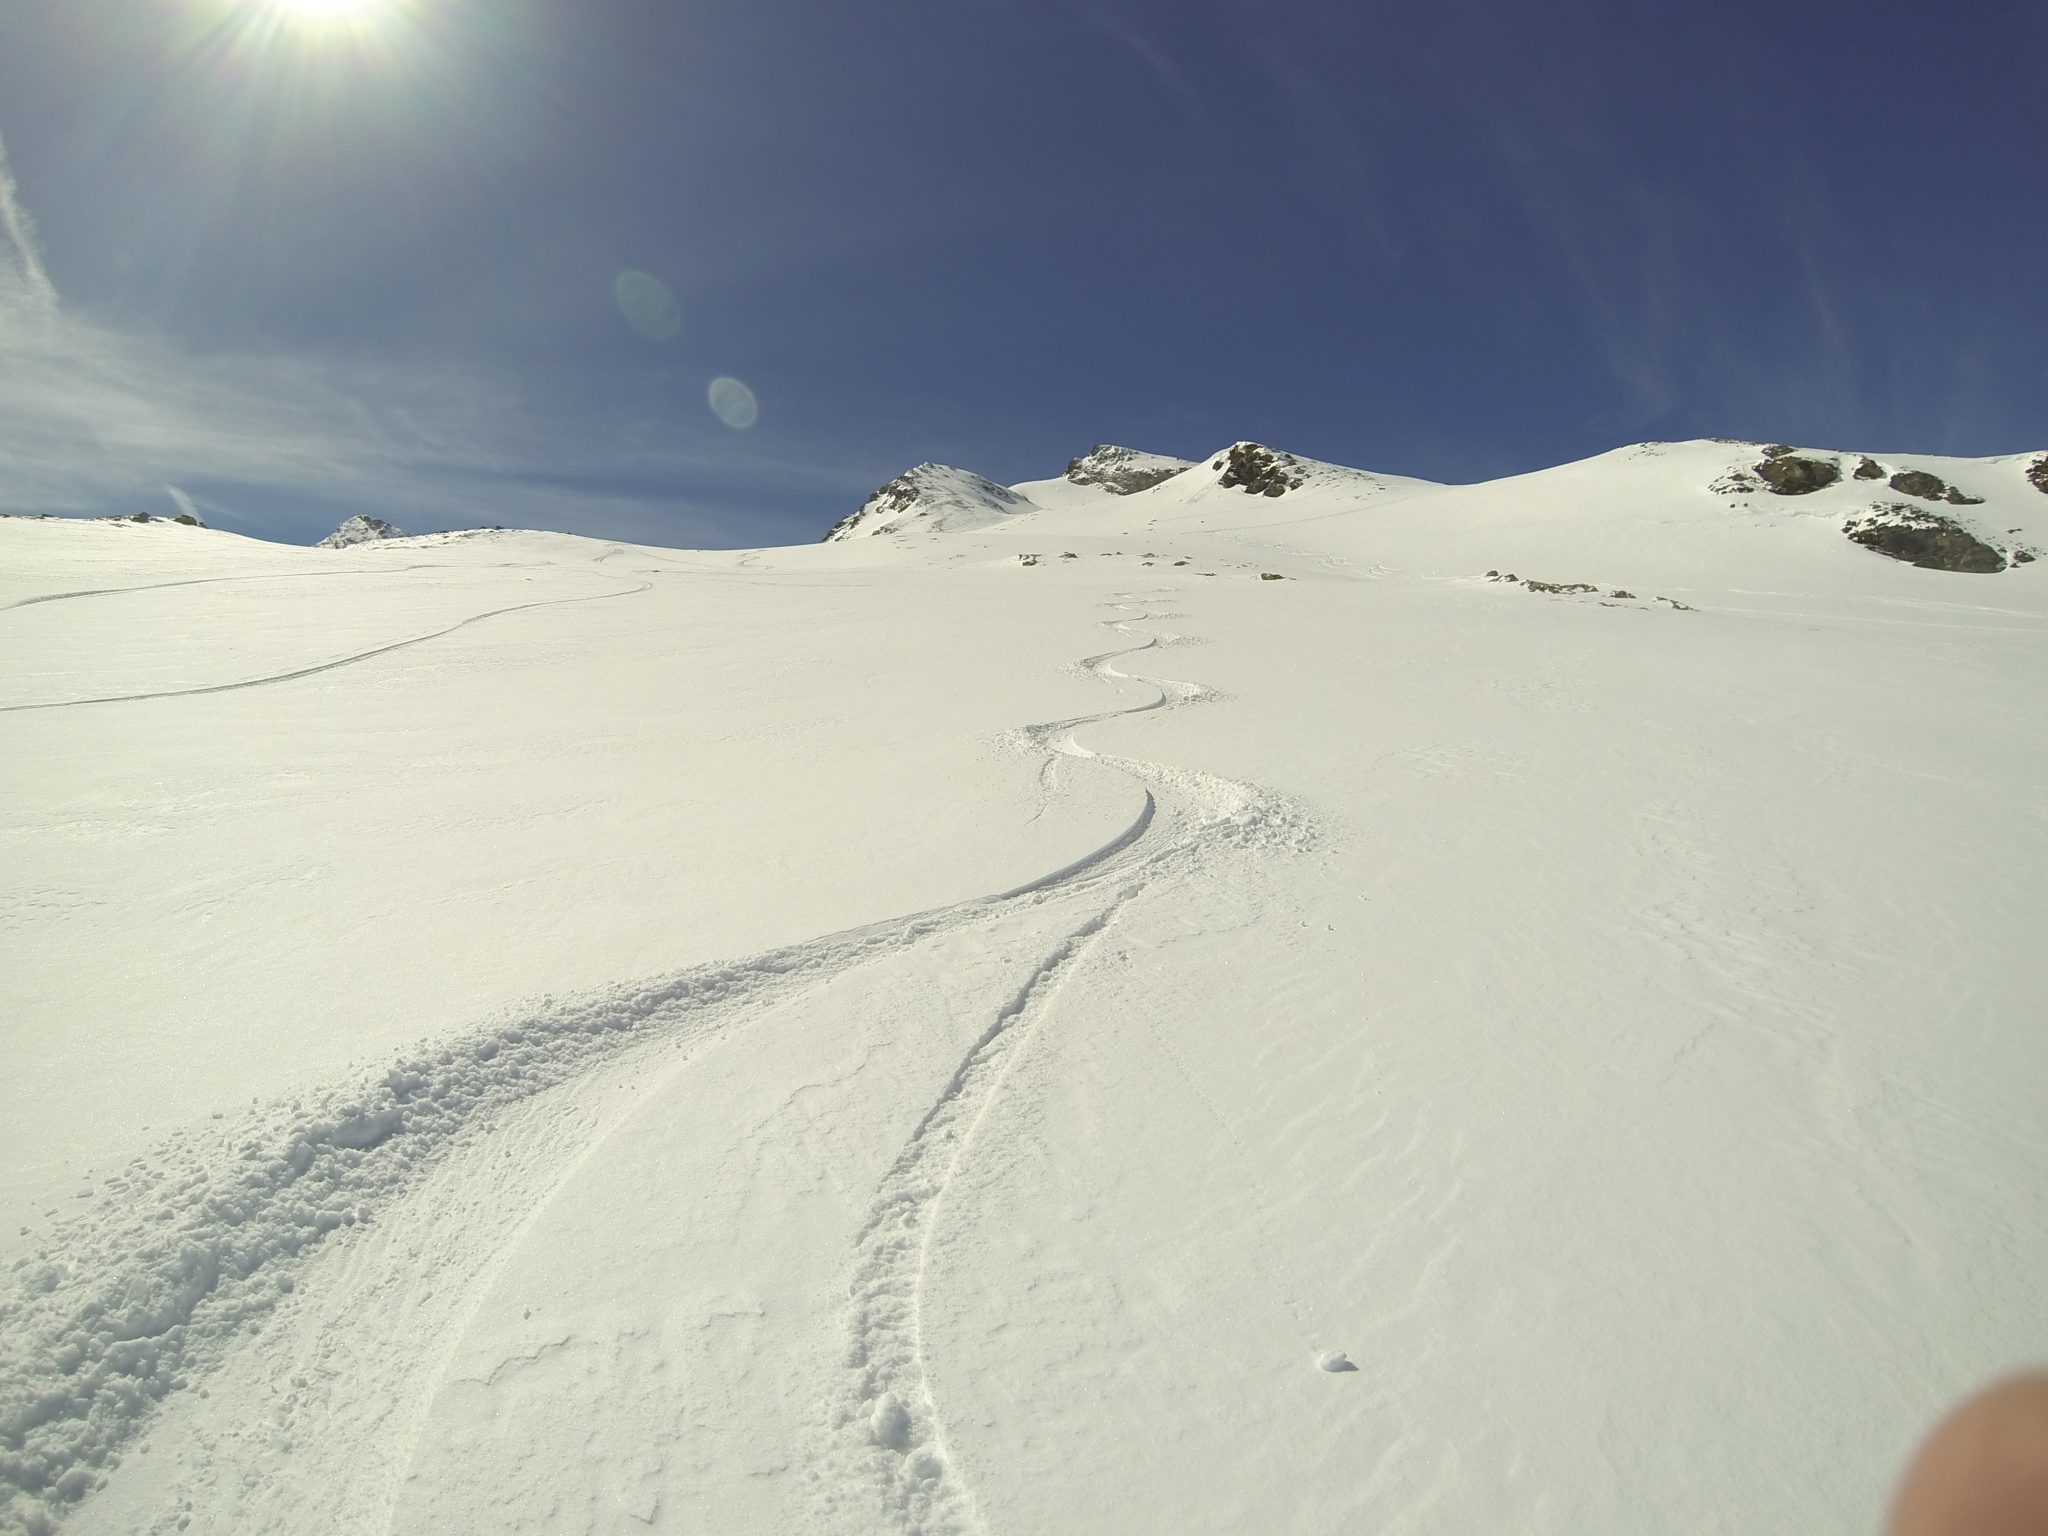 End of season 2015 and powdery in Val d'Isère 7